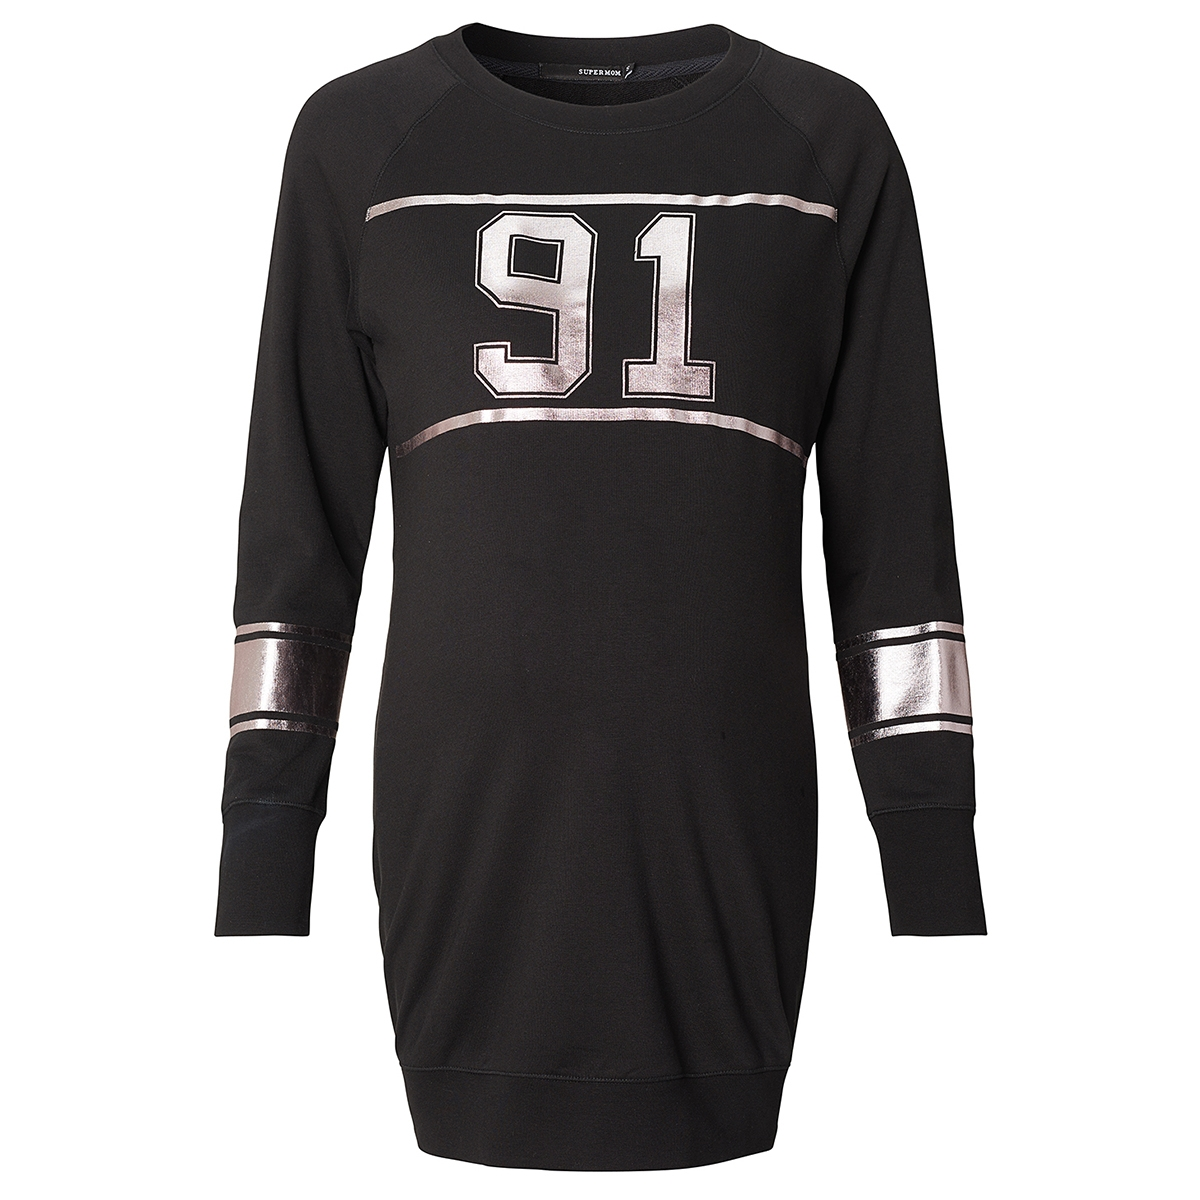 s0657 sweat long supermom positie trui black